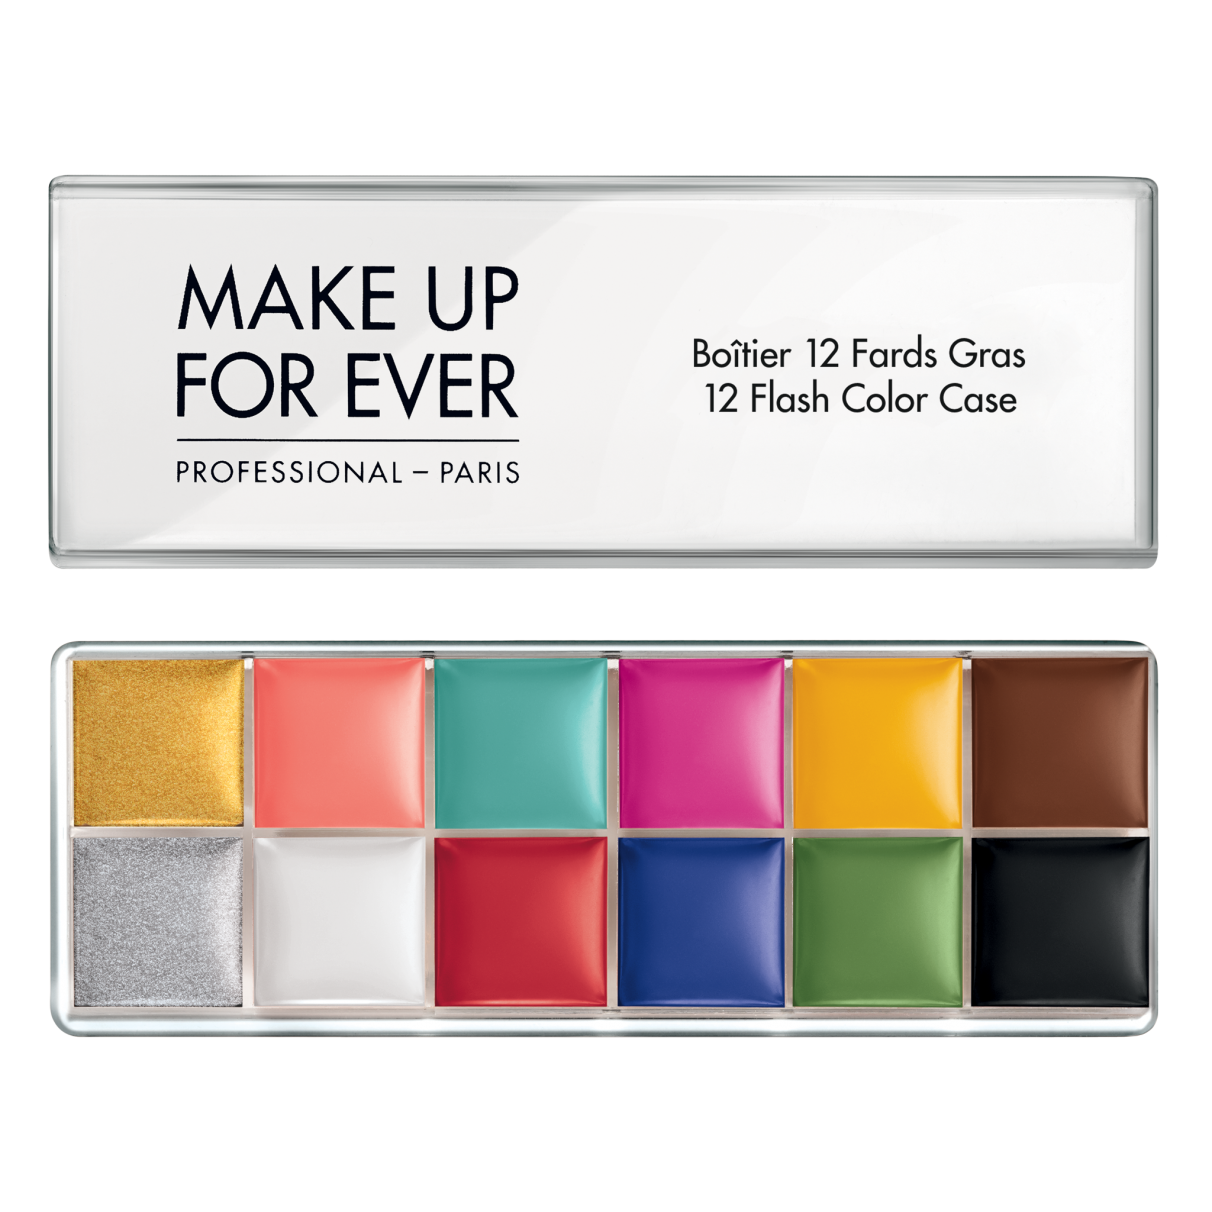 MUFE 12 FLASH COLOR CASE A palette of 12 highly pigmented